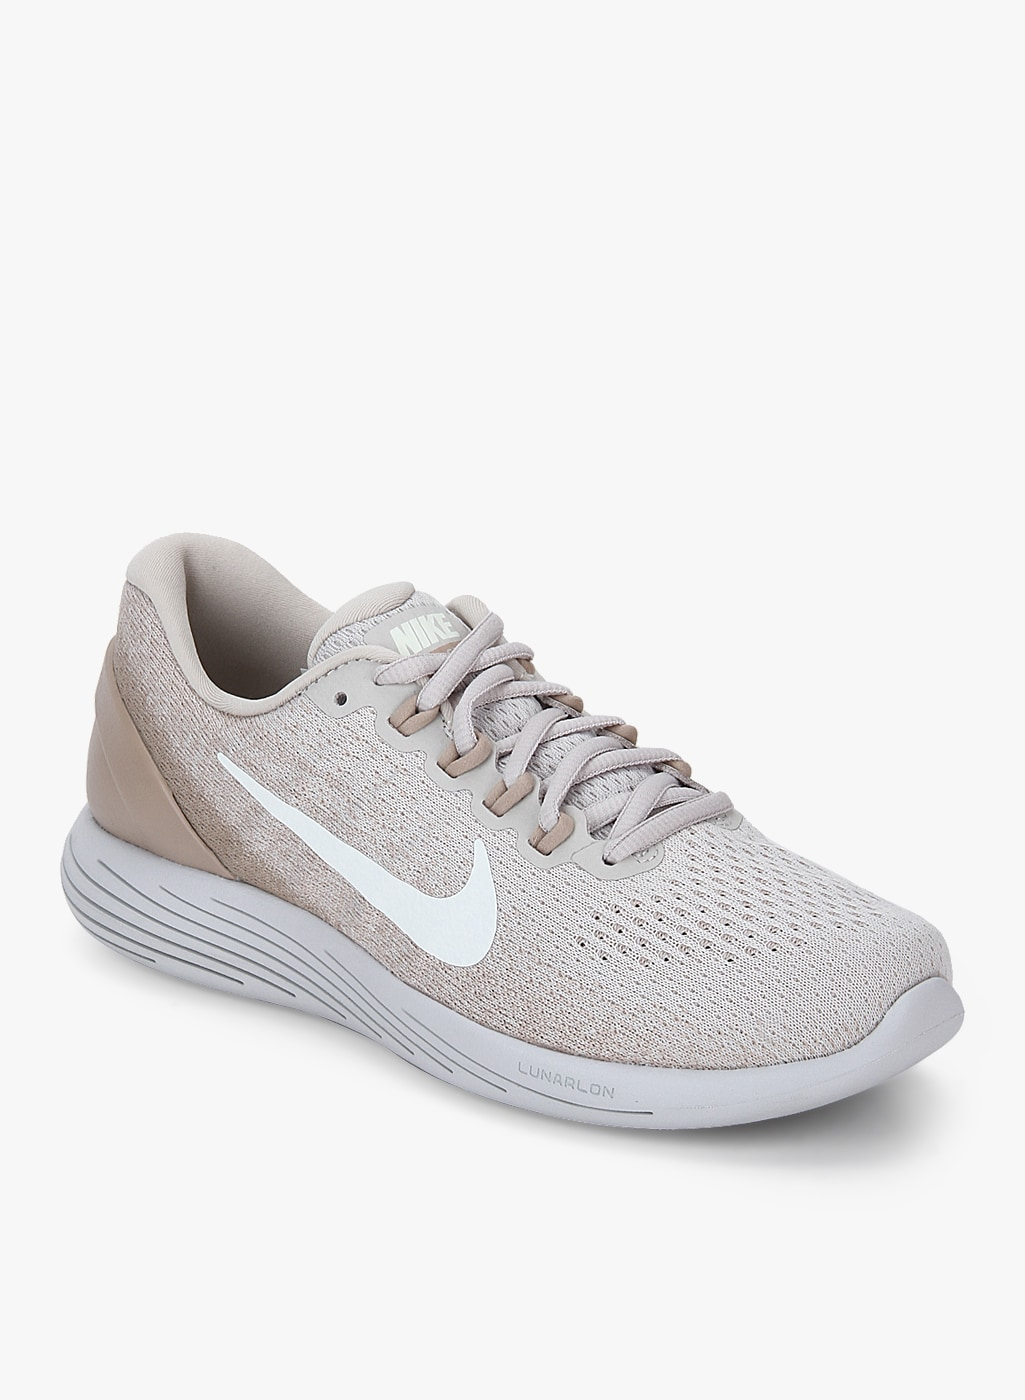 new style 72c01 063d8 Nike Lunarglide 9 Beige Running Shoes women